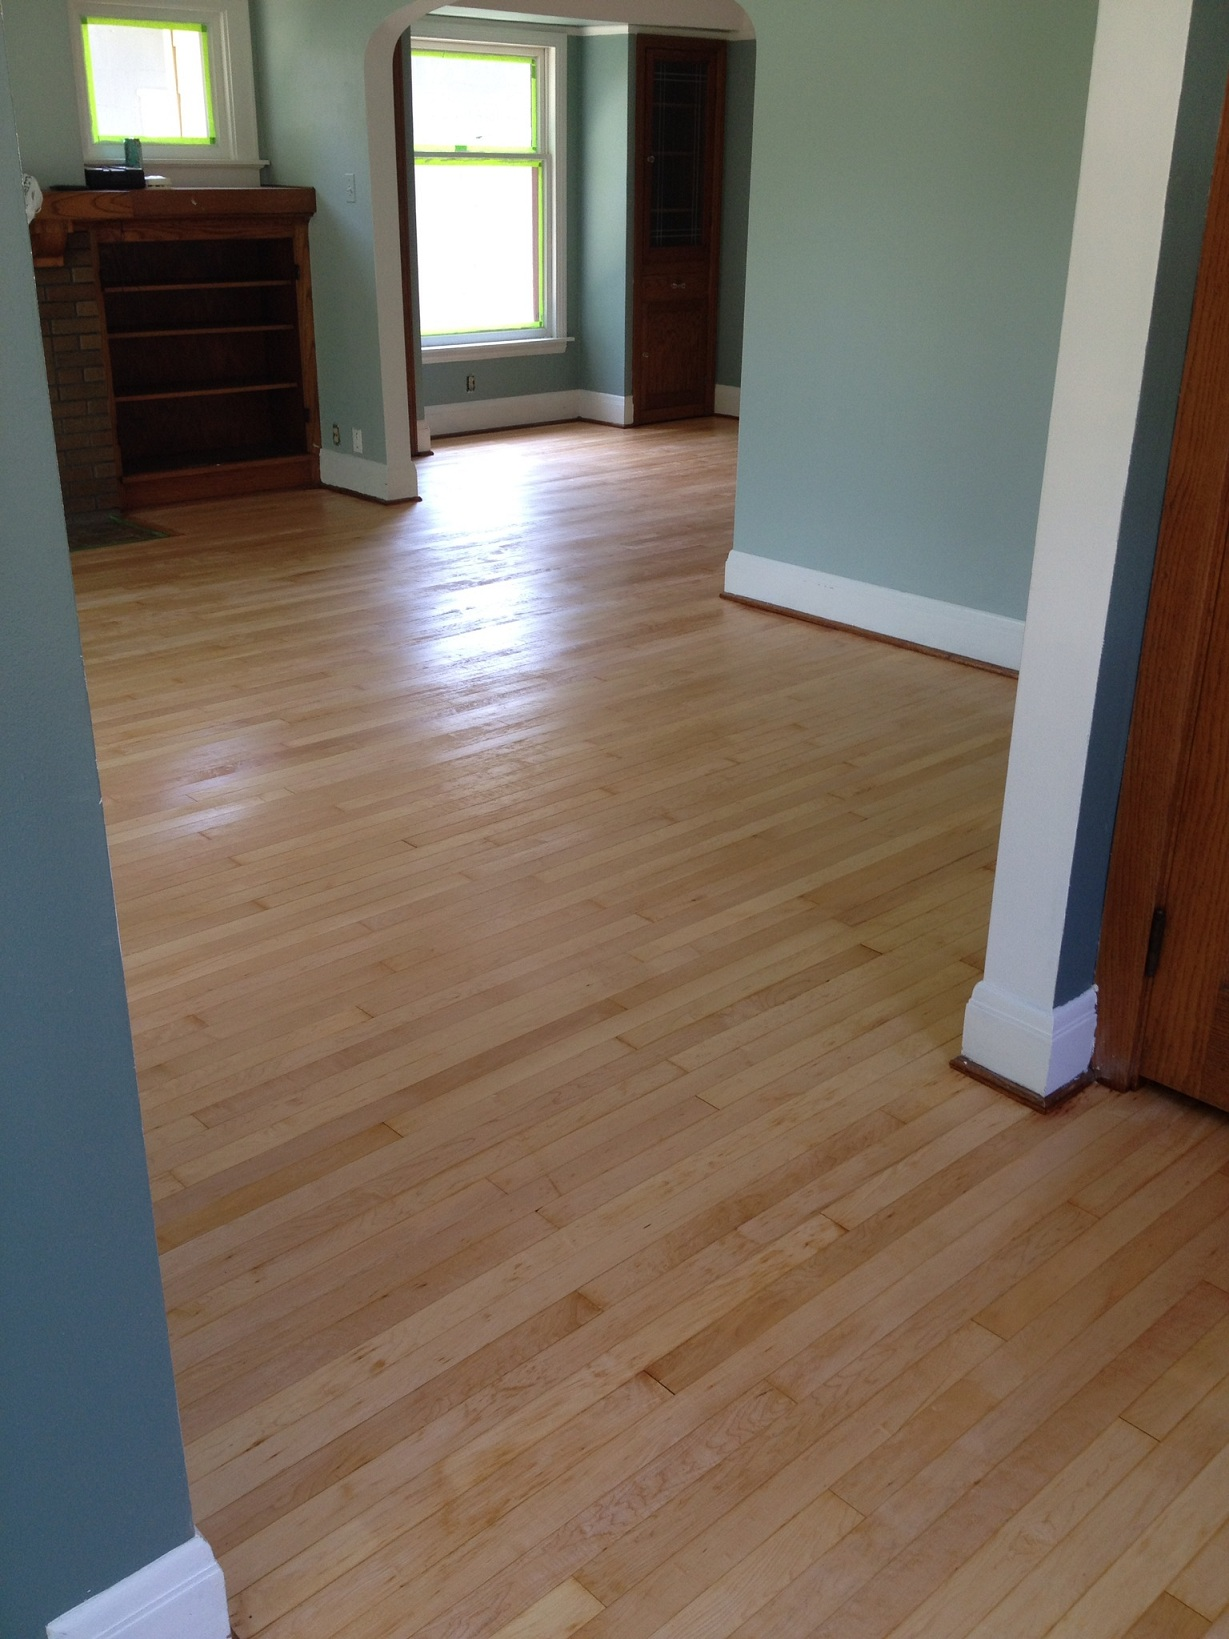 Pine floor refinish please help vinyl hardwood floor paint pine floor refinish please help photo4g dailygadgetfo Images